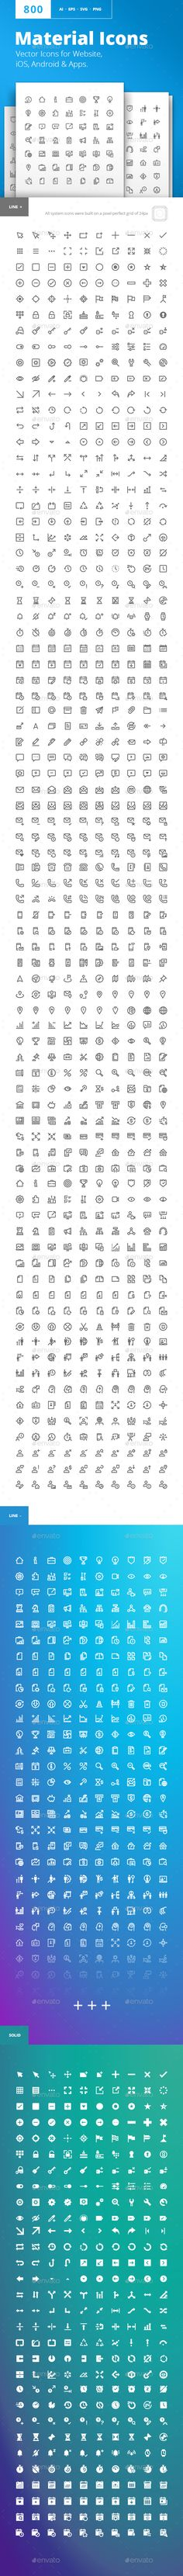 Material Design Icons Vector Icons for Website, iOS, Android & Apps. Material design pixel perfect icons set. Four different types of material icons – thin line, solid line, negative line and negative solid. Icons for business, marketing, social media, UI and UX, finance and banking, navigation, mobile app, communication, action icons, management, SEO.